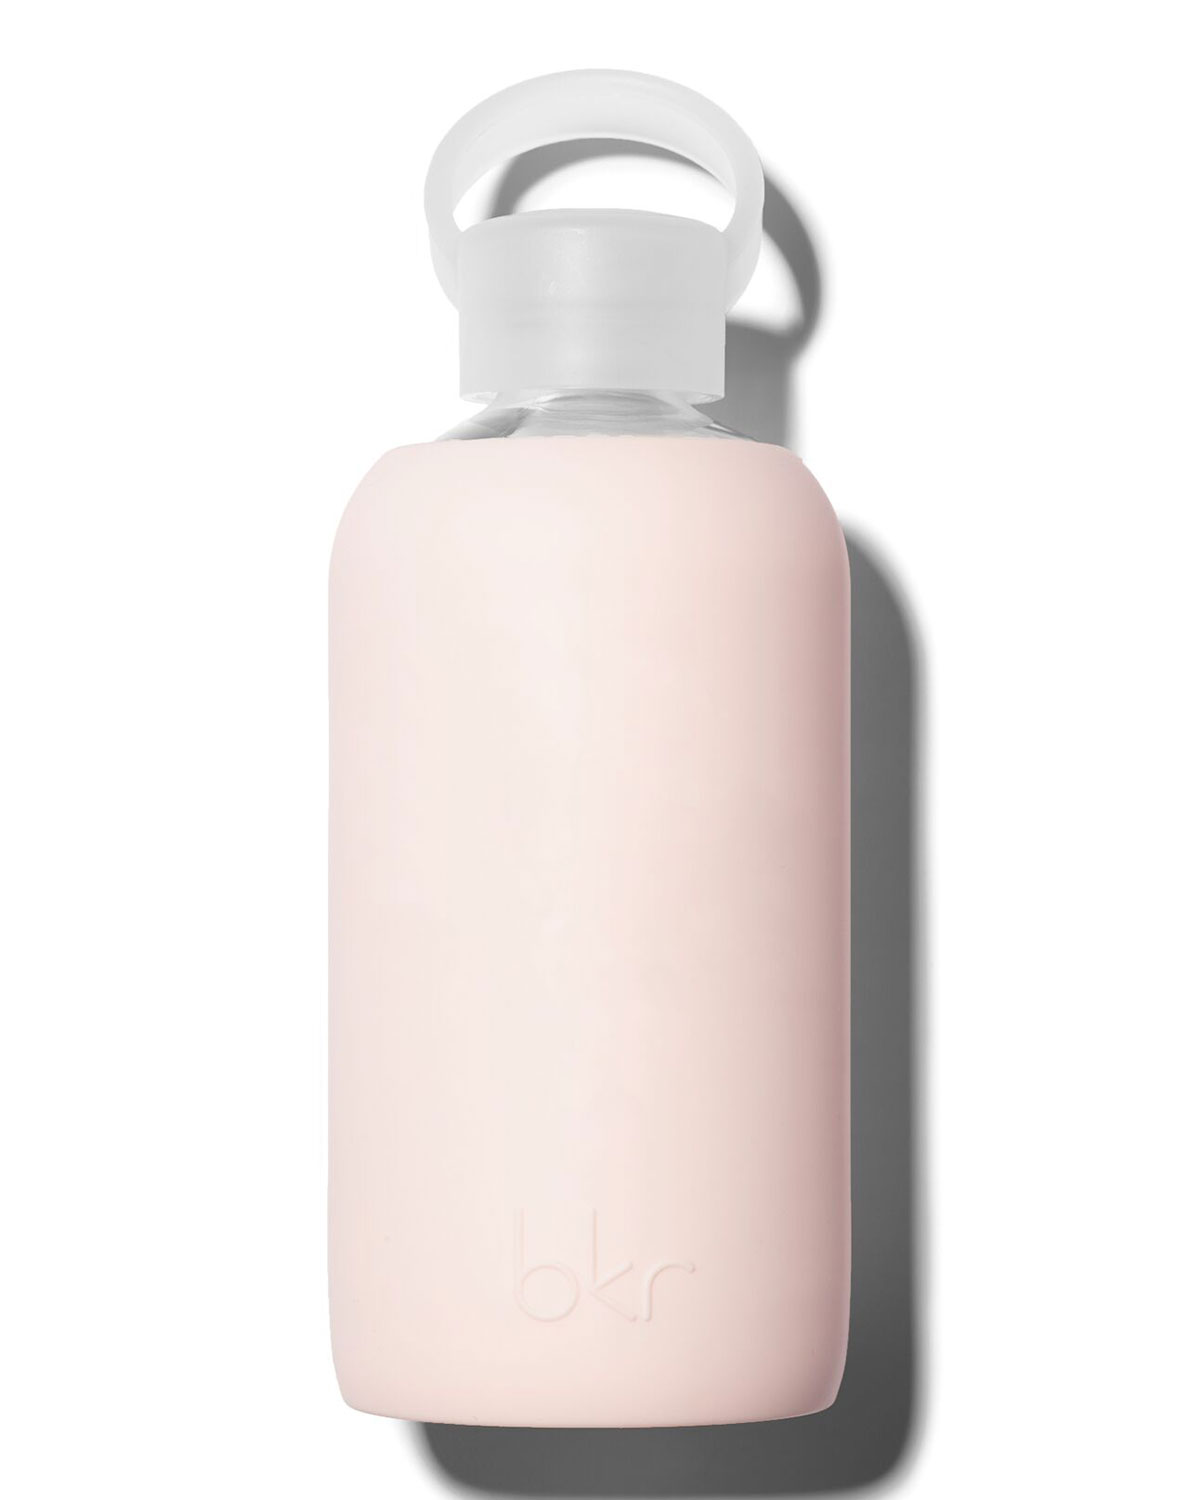 Bkr Glass Water Bottle, Tutu, 16 oz./ 500 mL